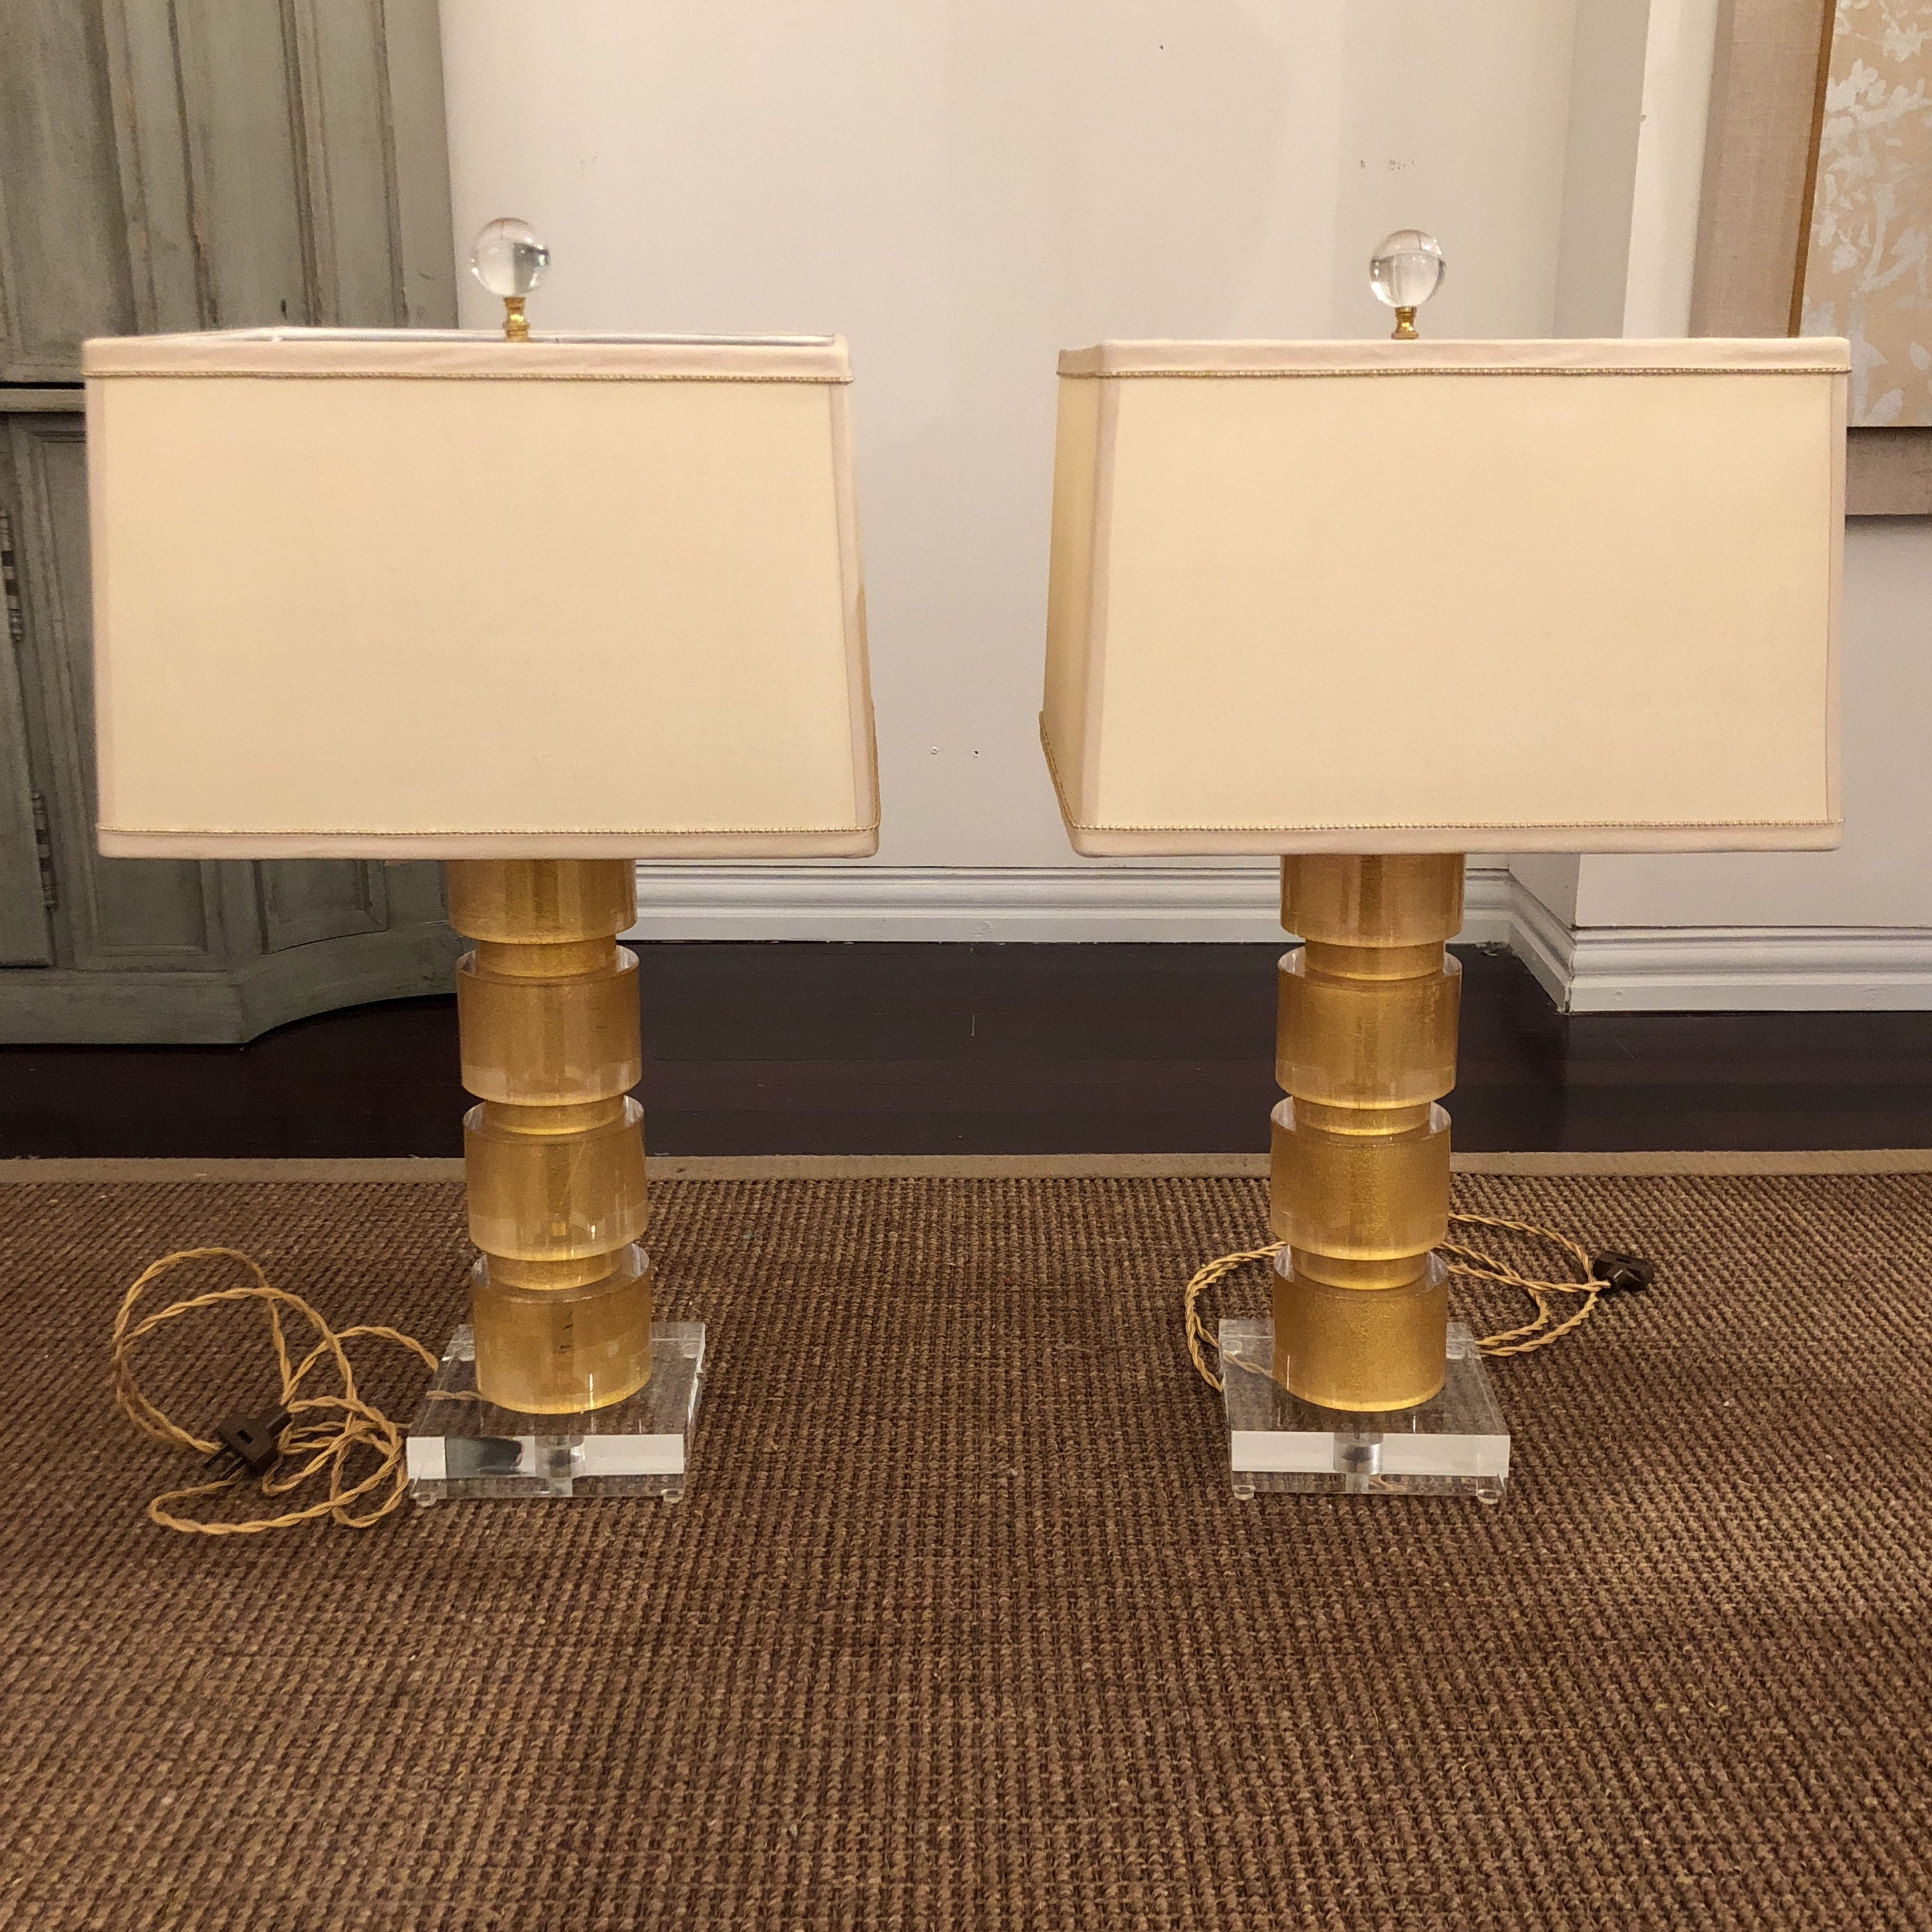 Ordinaire Jan Showers Link Lamps With New Ivory Silk Shaded And Gold Beaded Trim.  Dims On